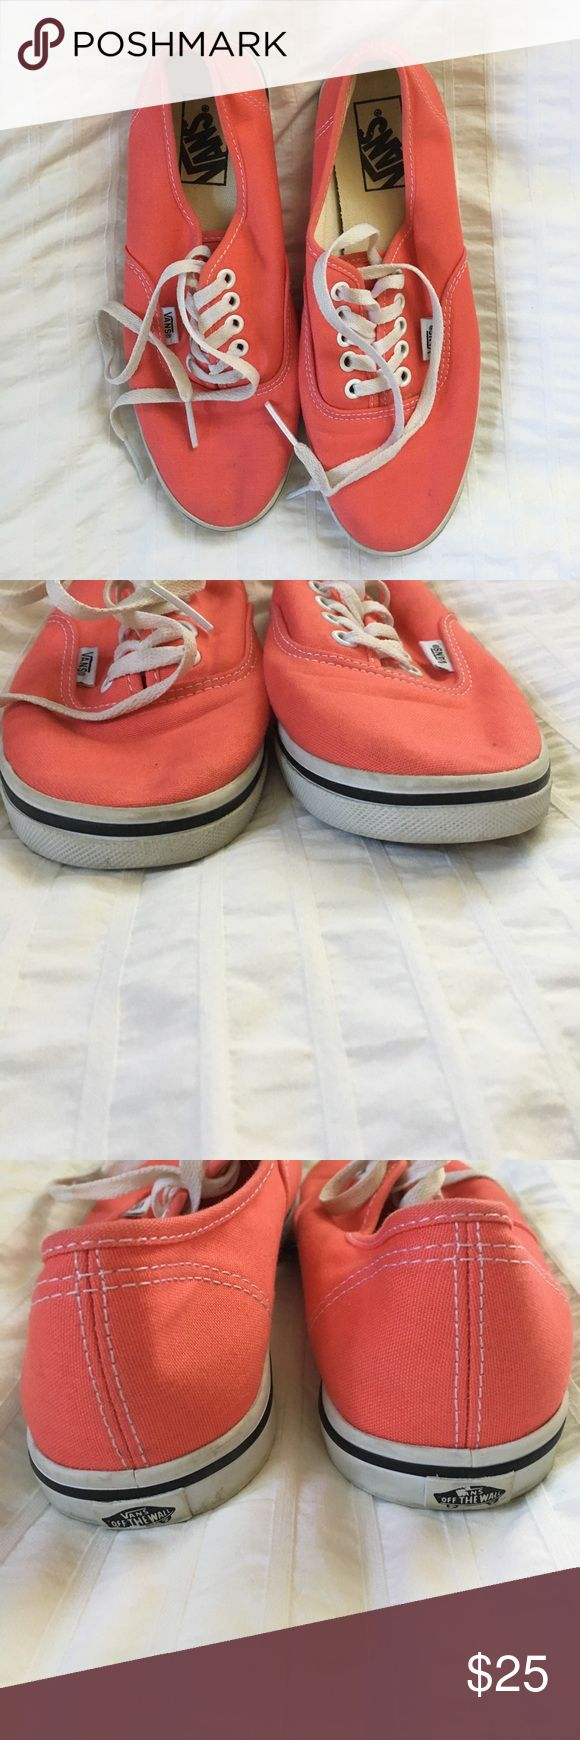 Selling these Coral Vans sneakers on Poshmark! My username is: emmachap. #shopmycloset #poshmark #fashion #shopping #style #forsale #Vans #Shoes